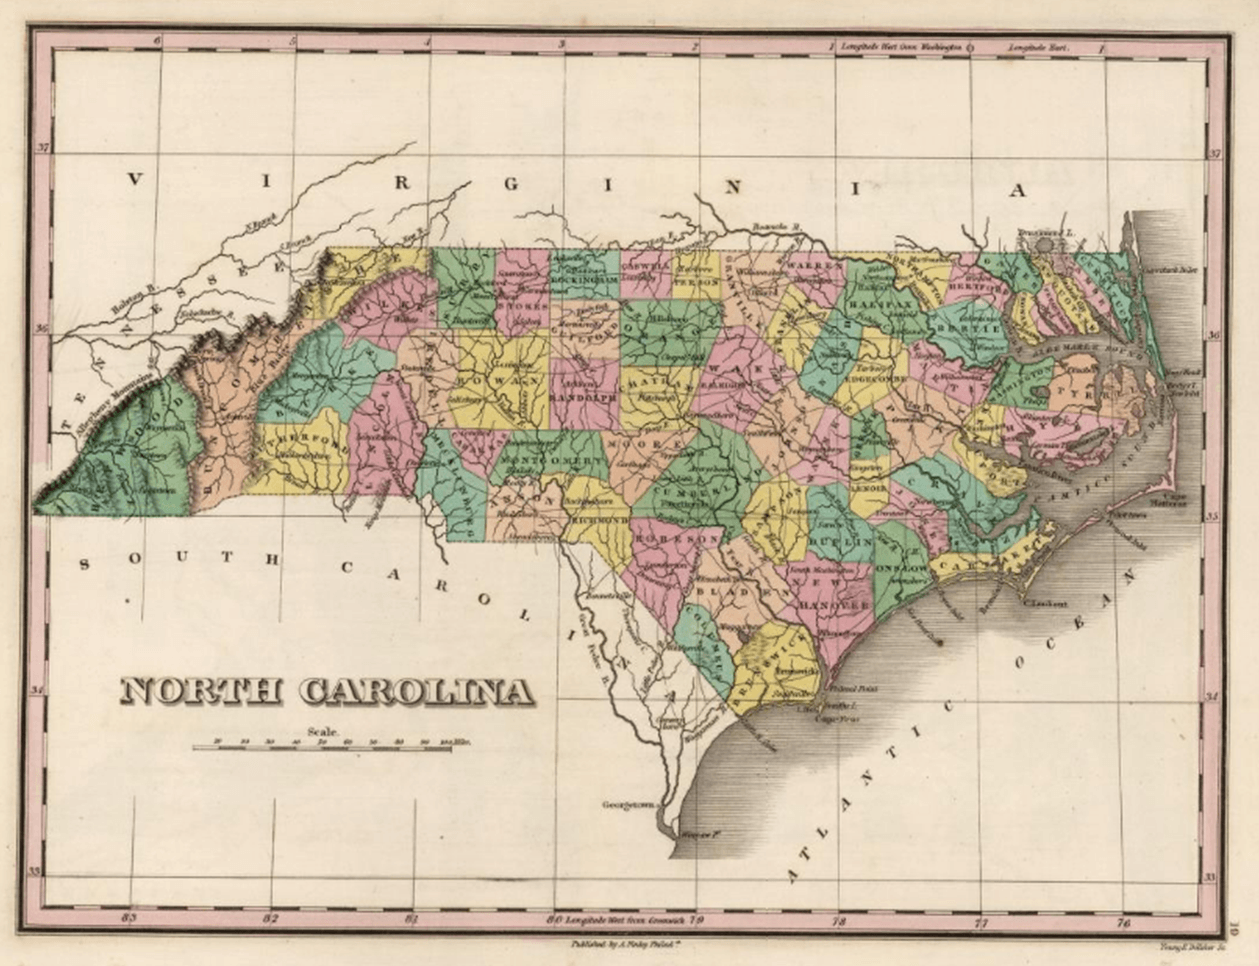 FileUnited States Png Wikimedia Commons Timeline - North carolina on the us map